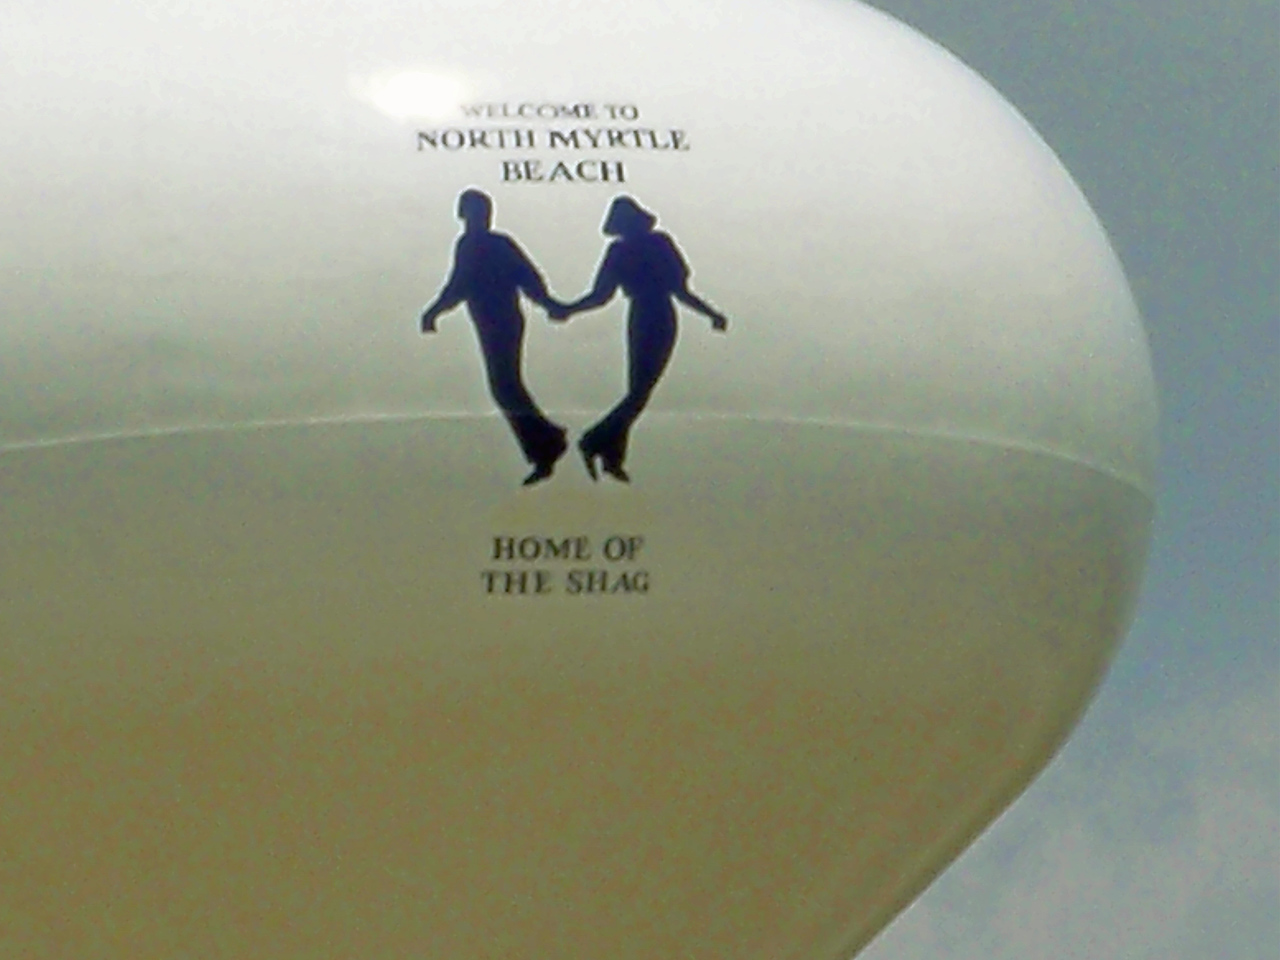 Is it really appropriate to put a couple shagging on the water tower?